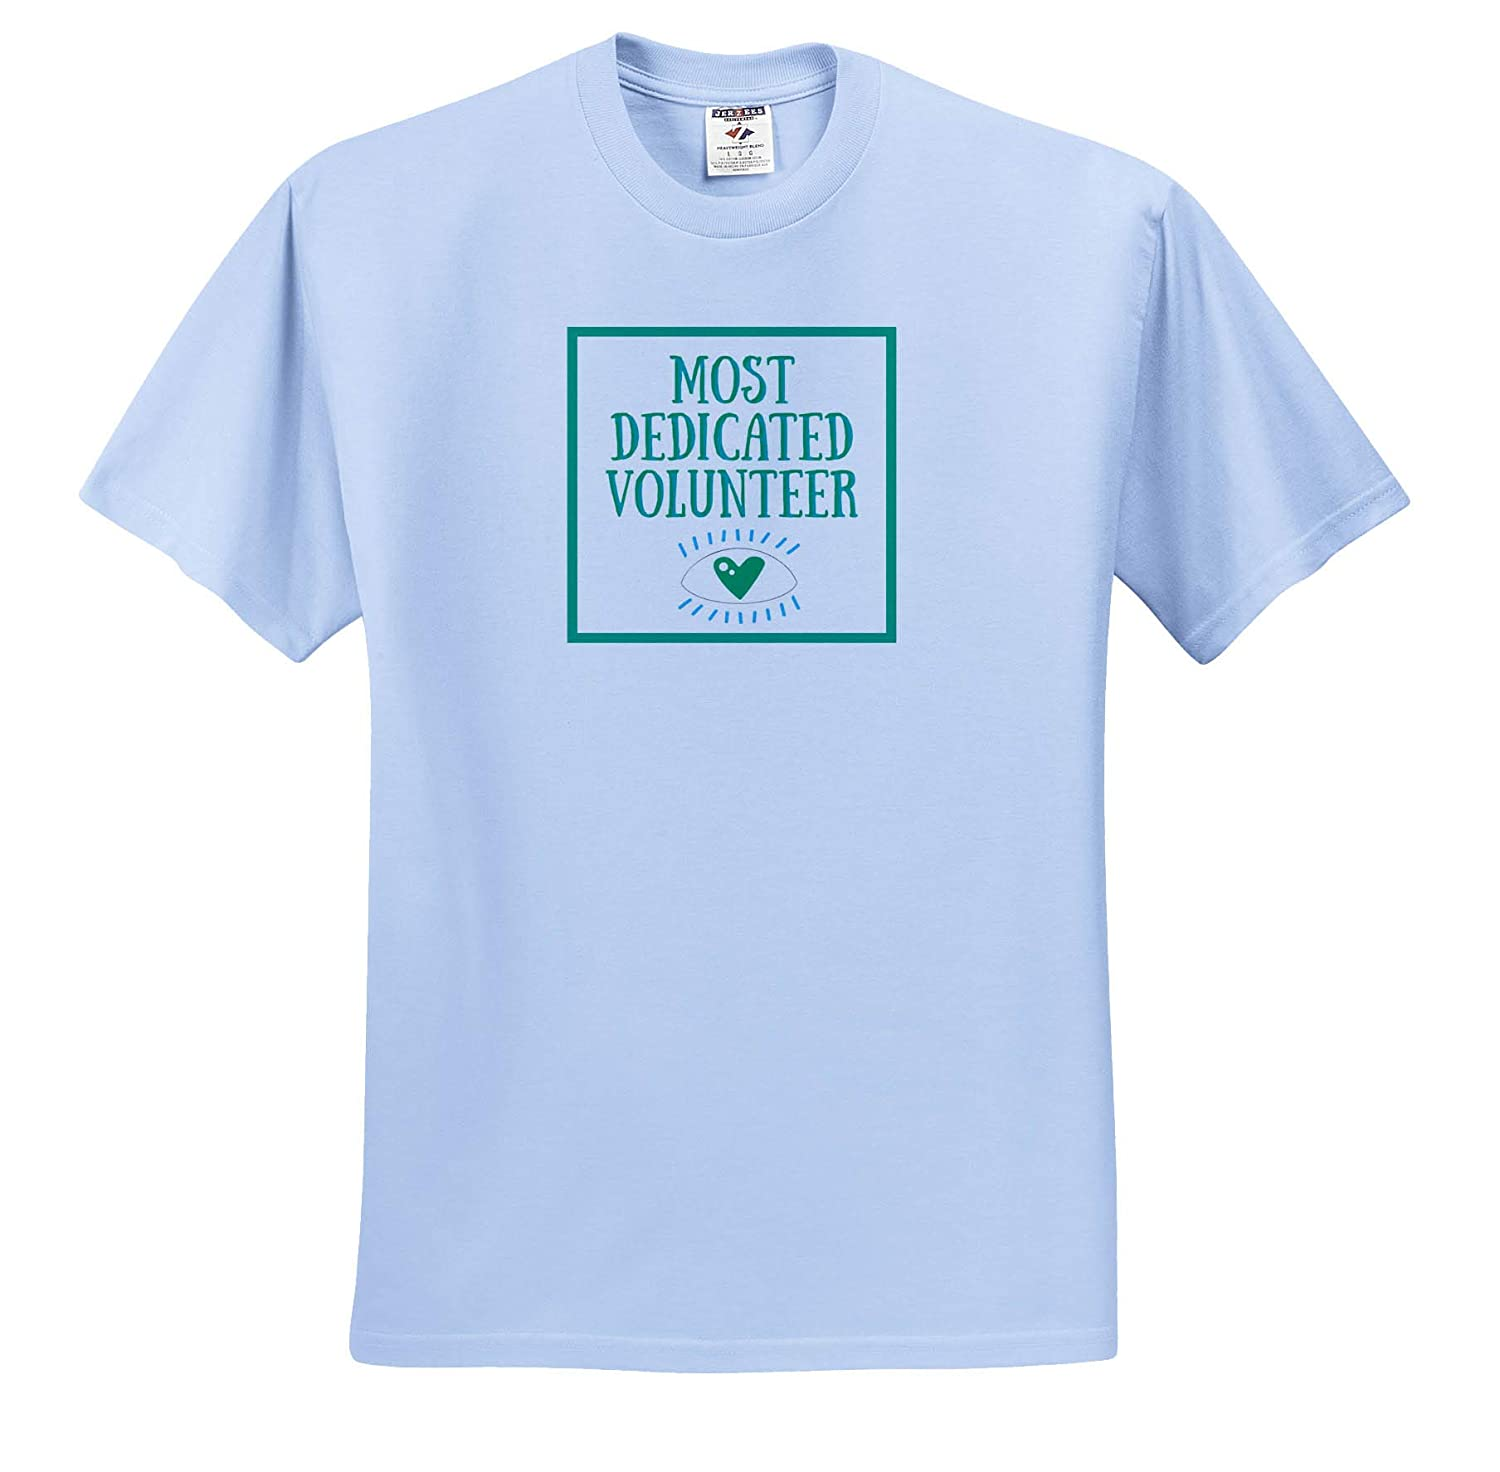 ts/_311799 3dRose Carrie Merchant Quote Adult T-Shirt XL Image of Most Dedicated Volunteer Teal Letters